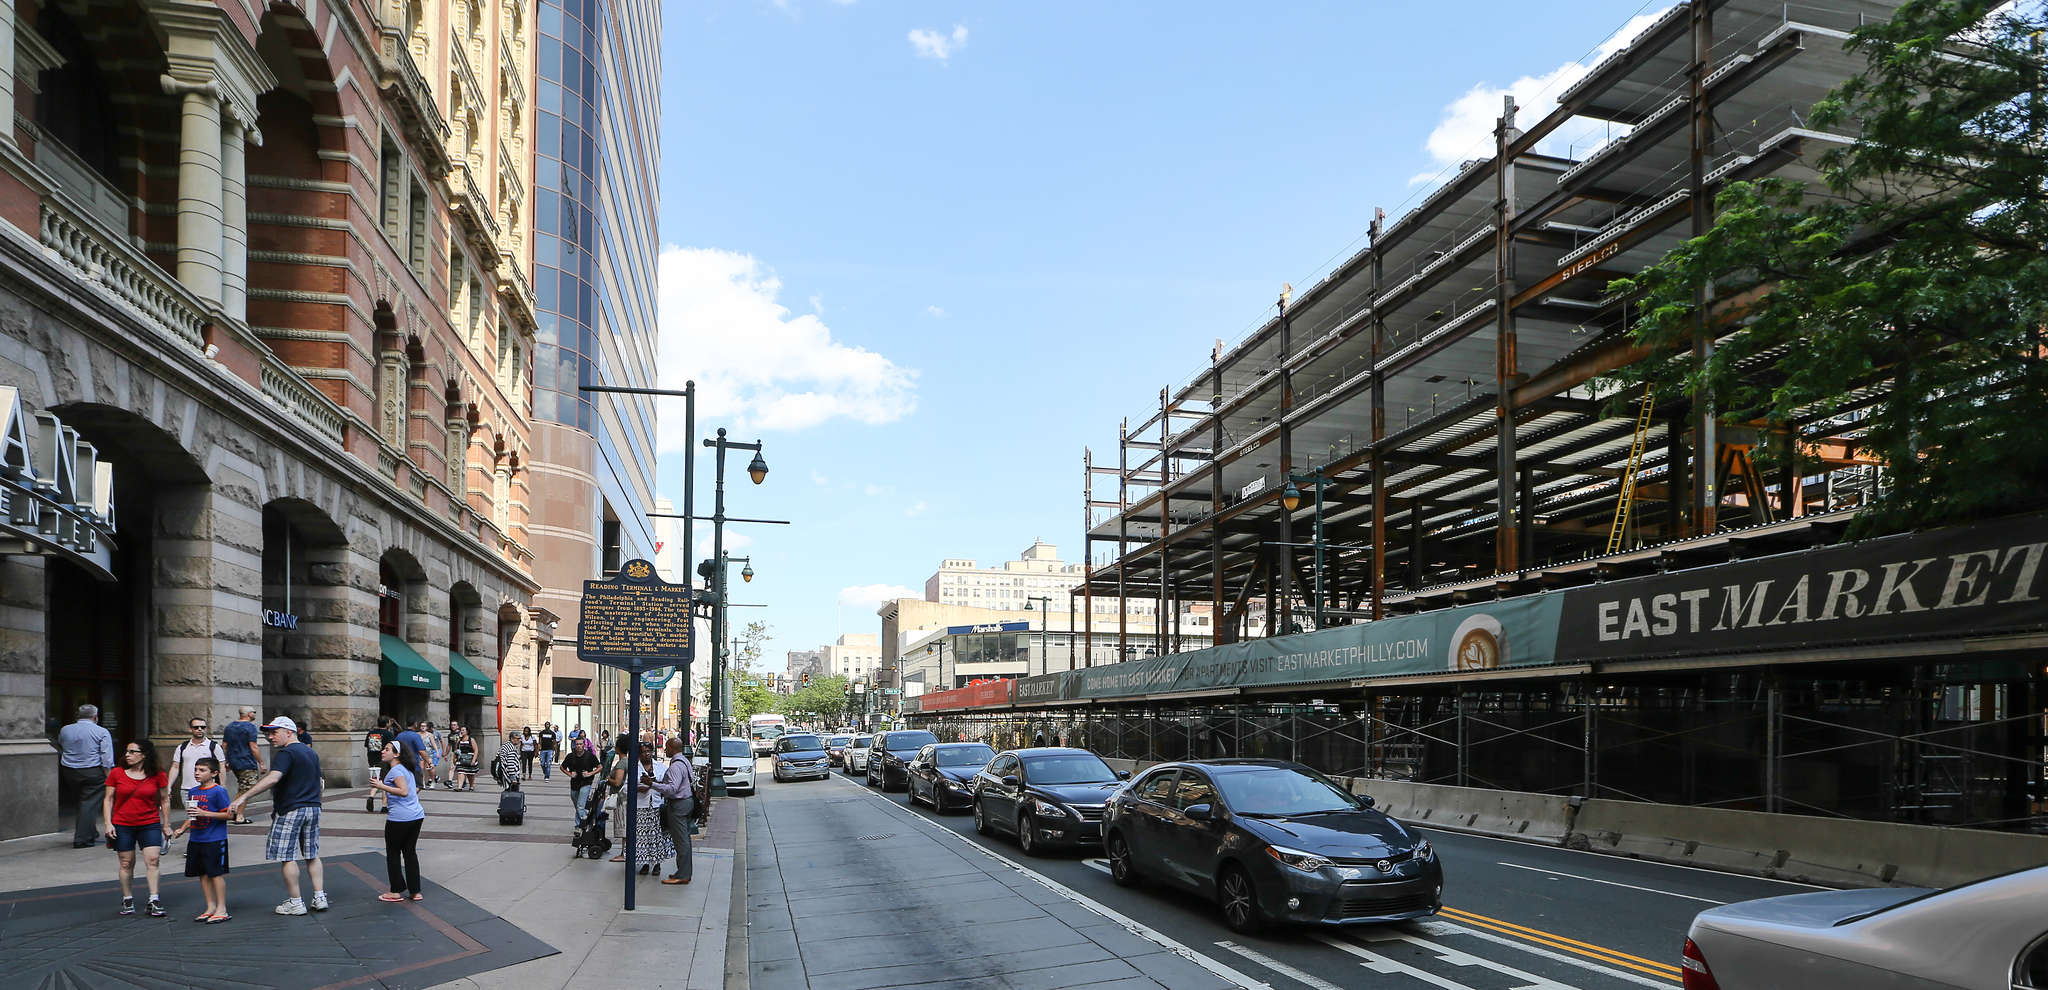 At 11th and Market Streets, a banner along a construction site touts the East Market retail and residential project, which will stretch to Chestnut Street.